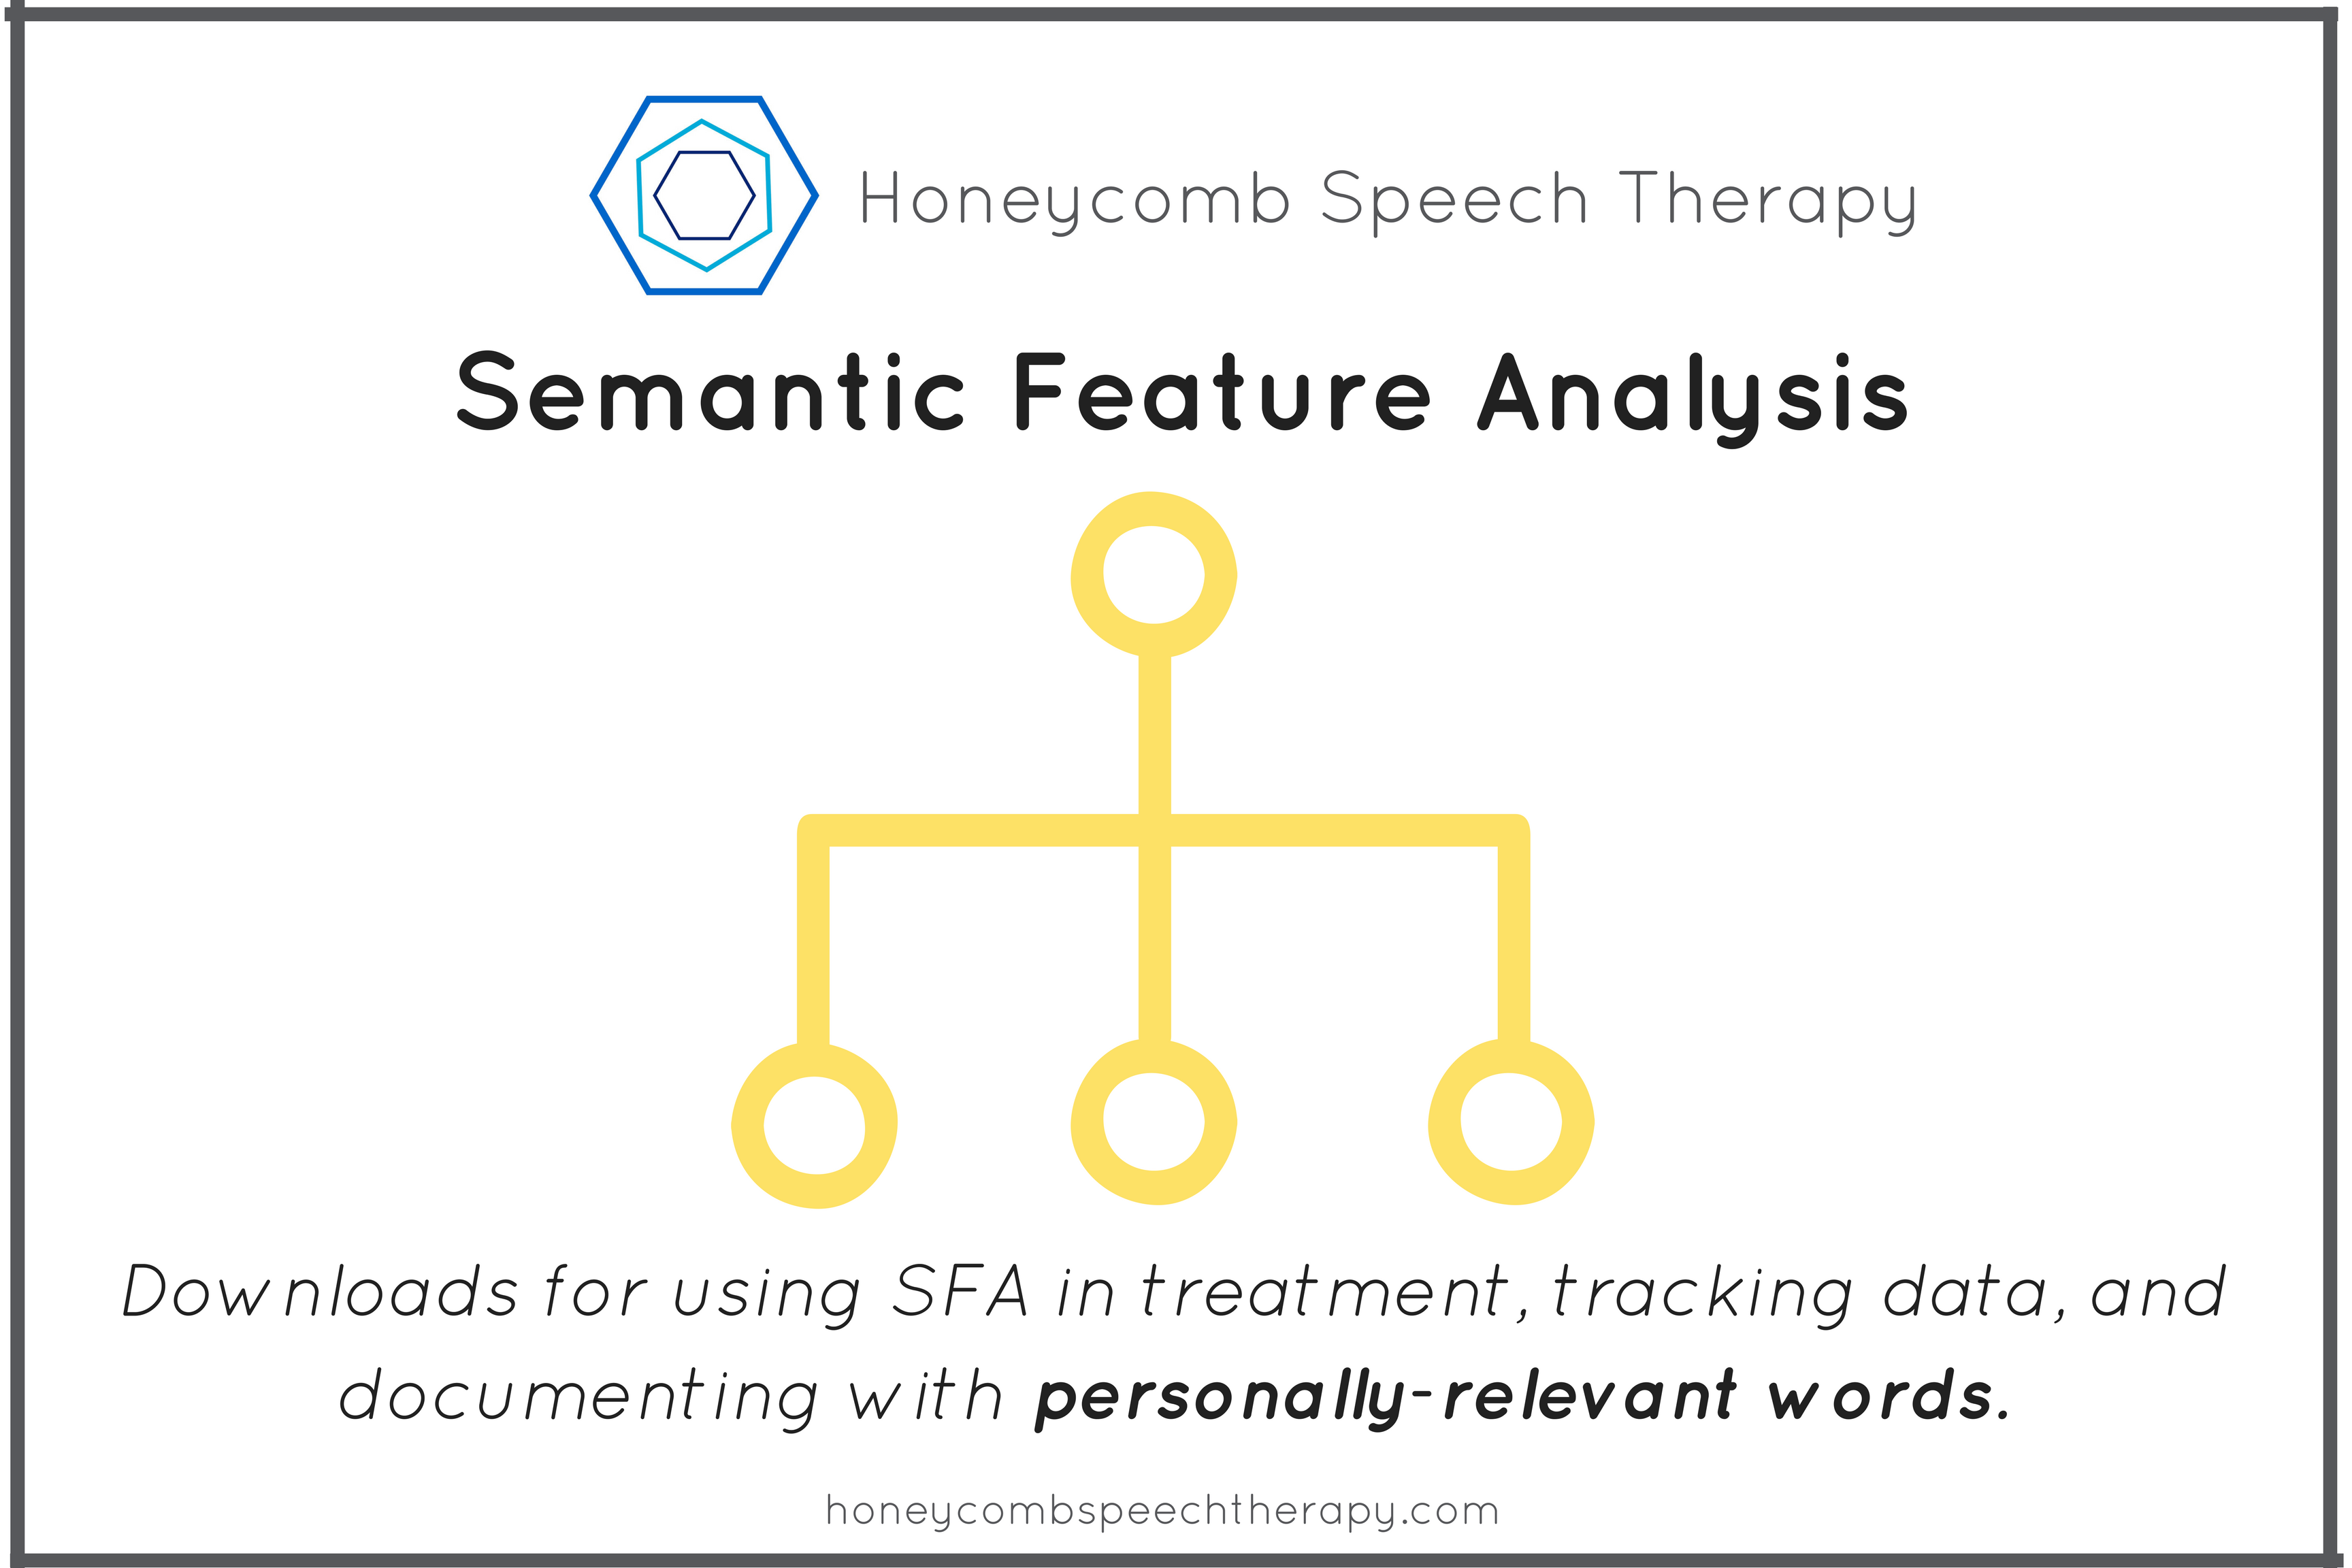 One Click: Semantic Feature Analysis